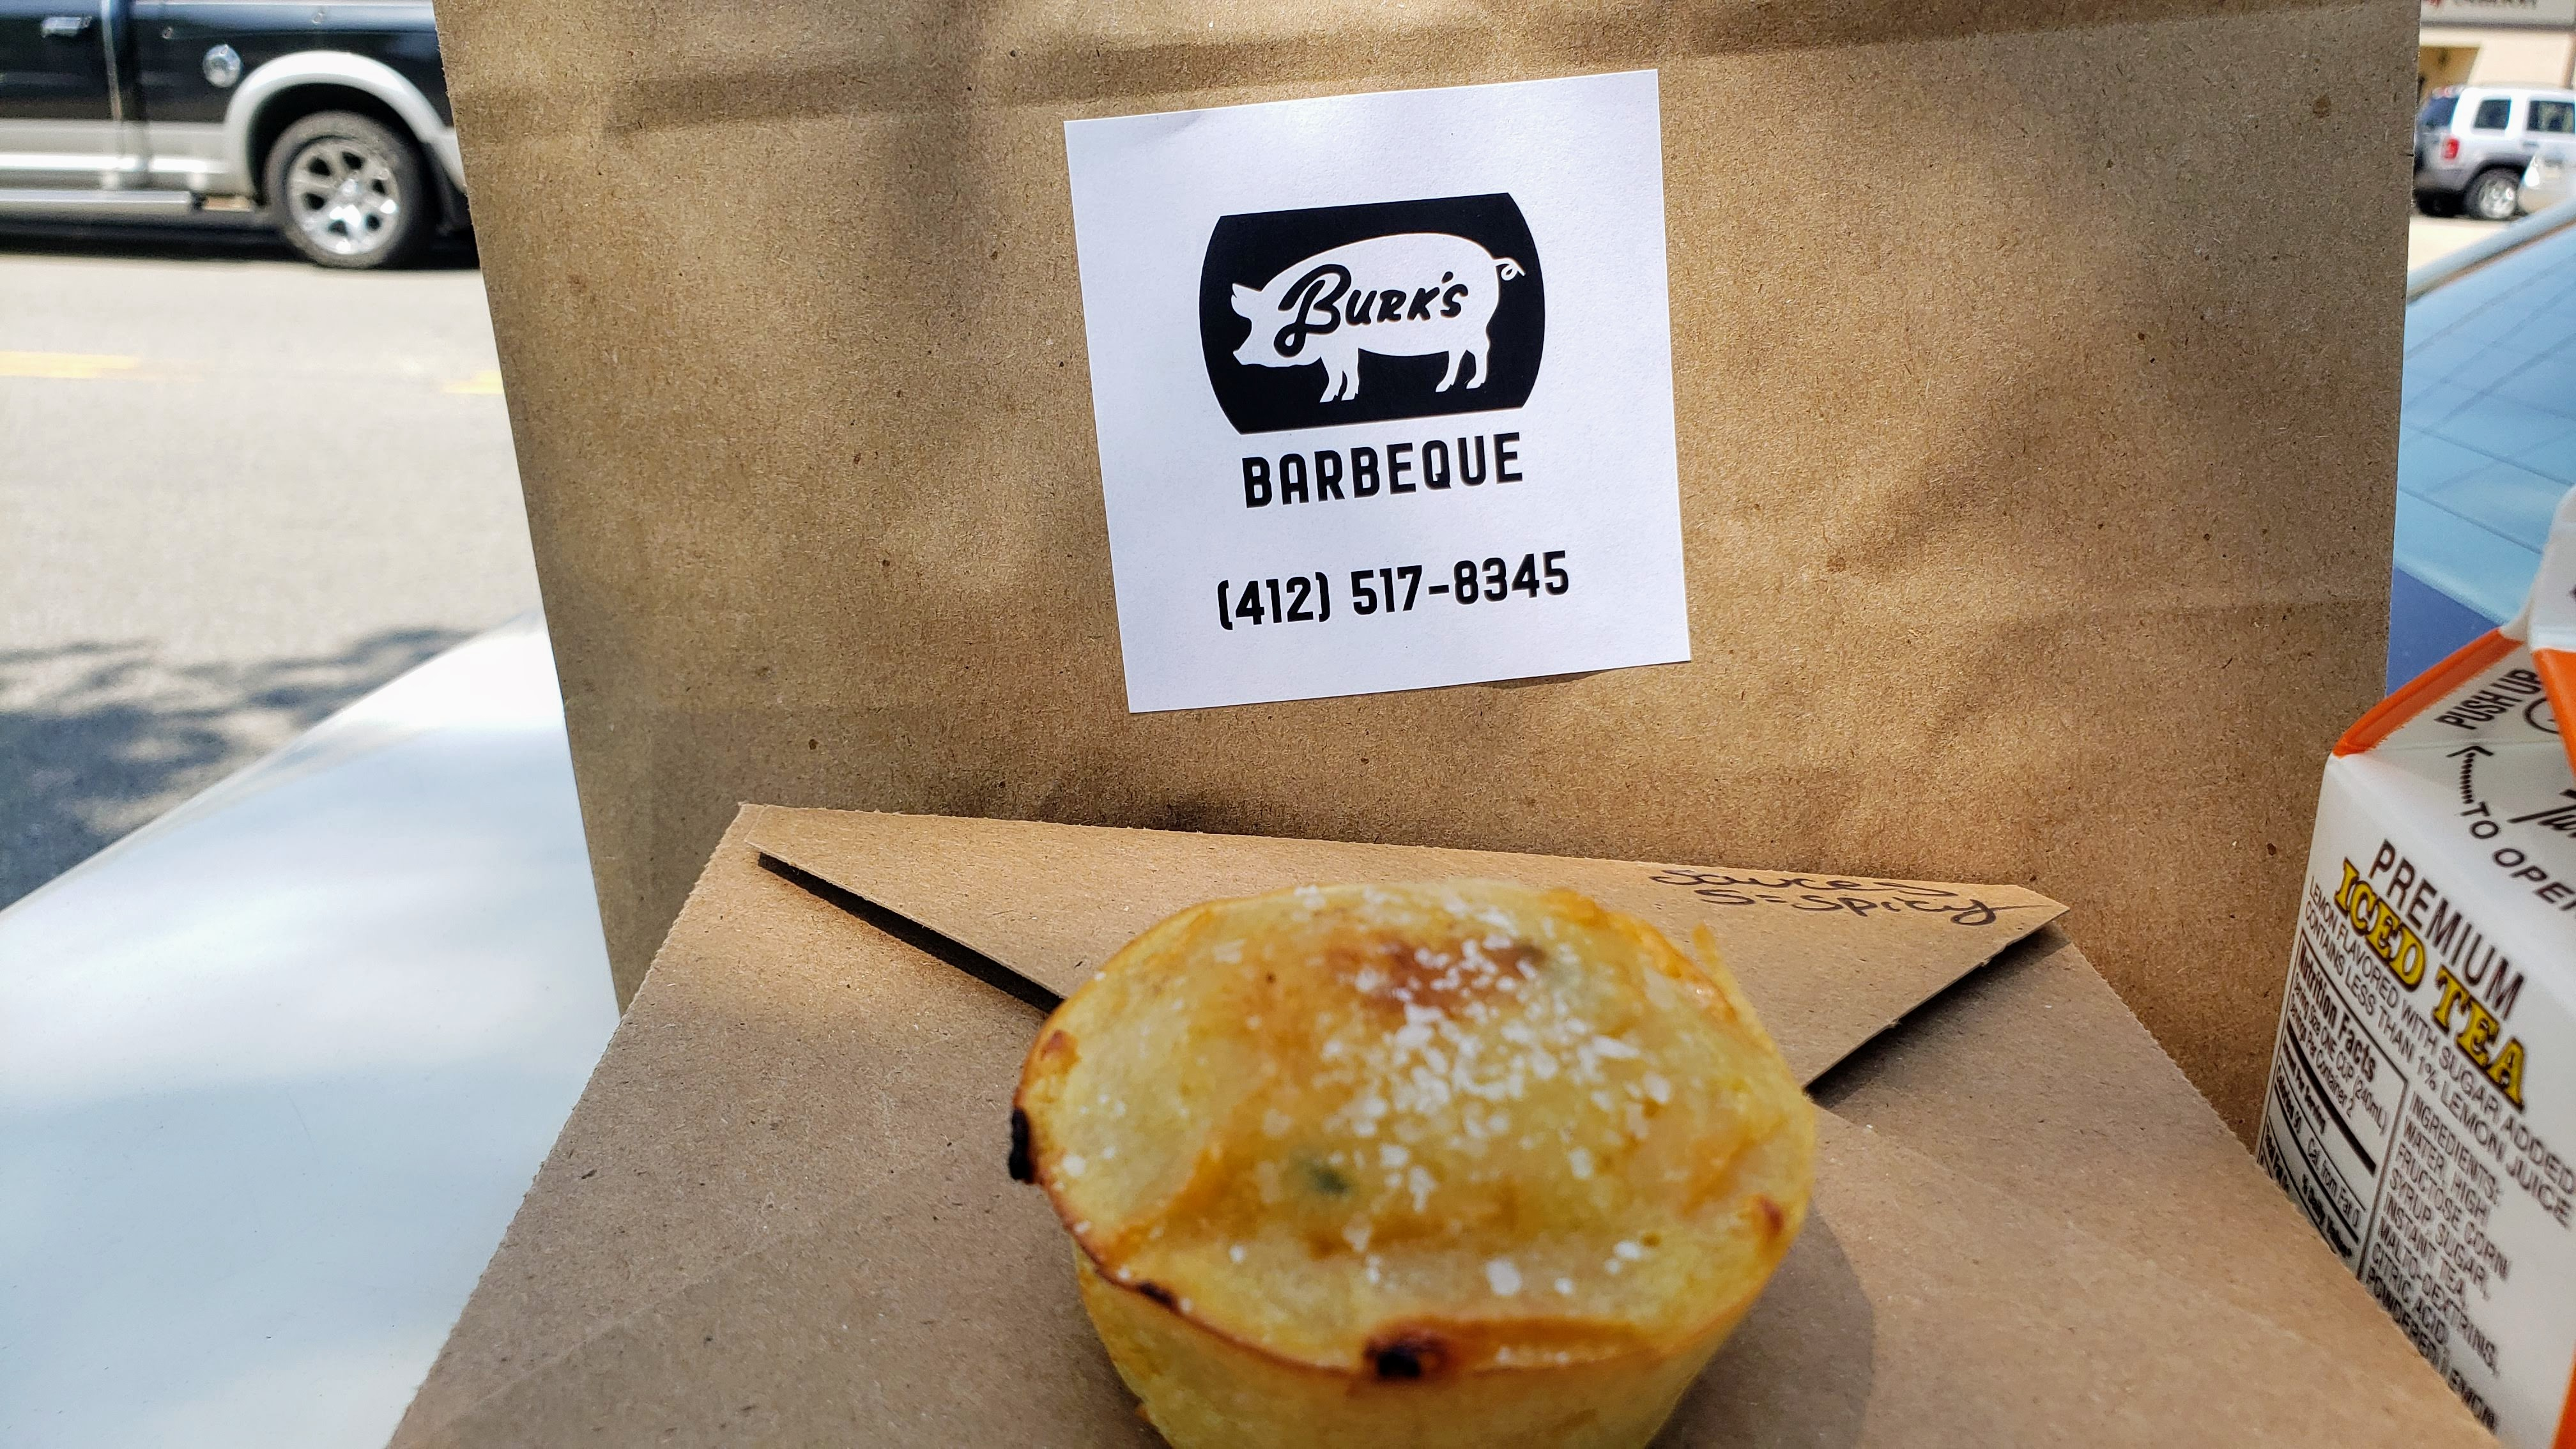 Burk's Barbeque jalapeno cheddar corn muffin